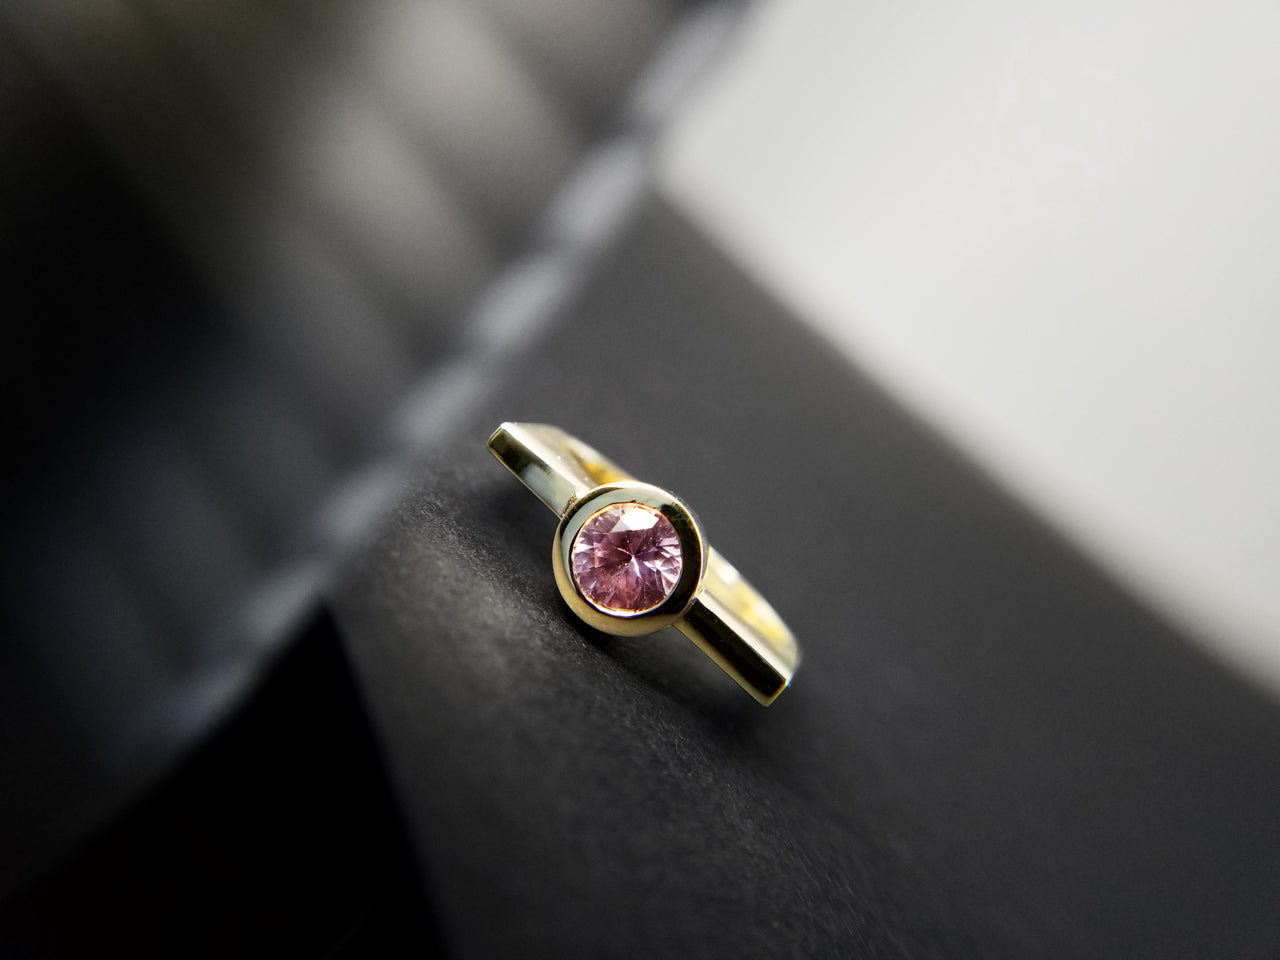 14k gold with sapphire